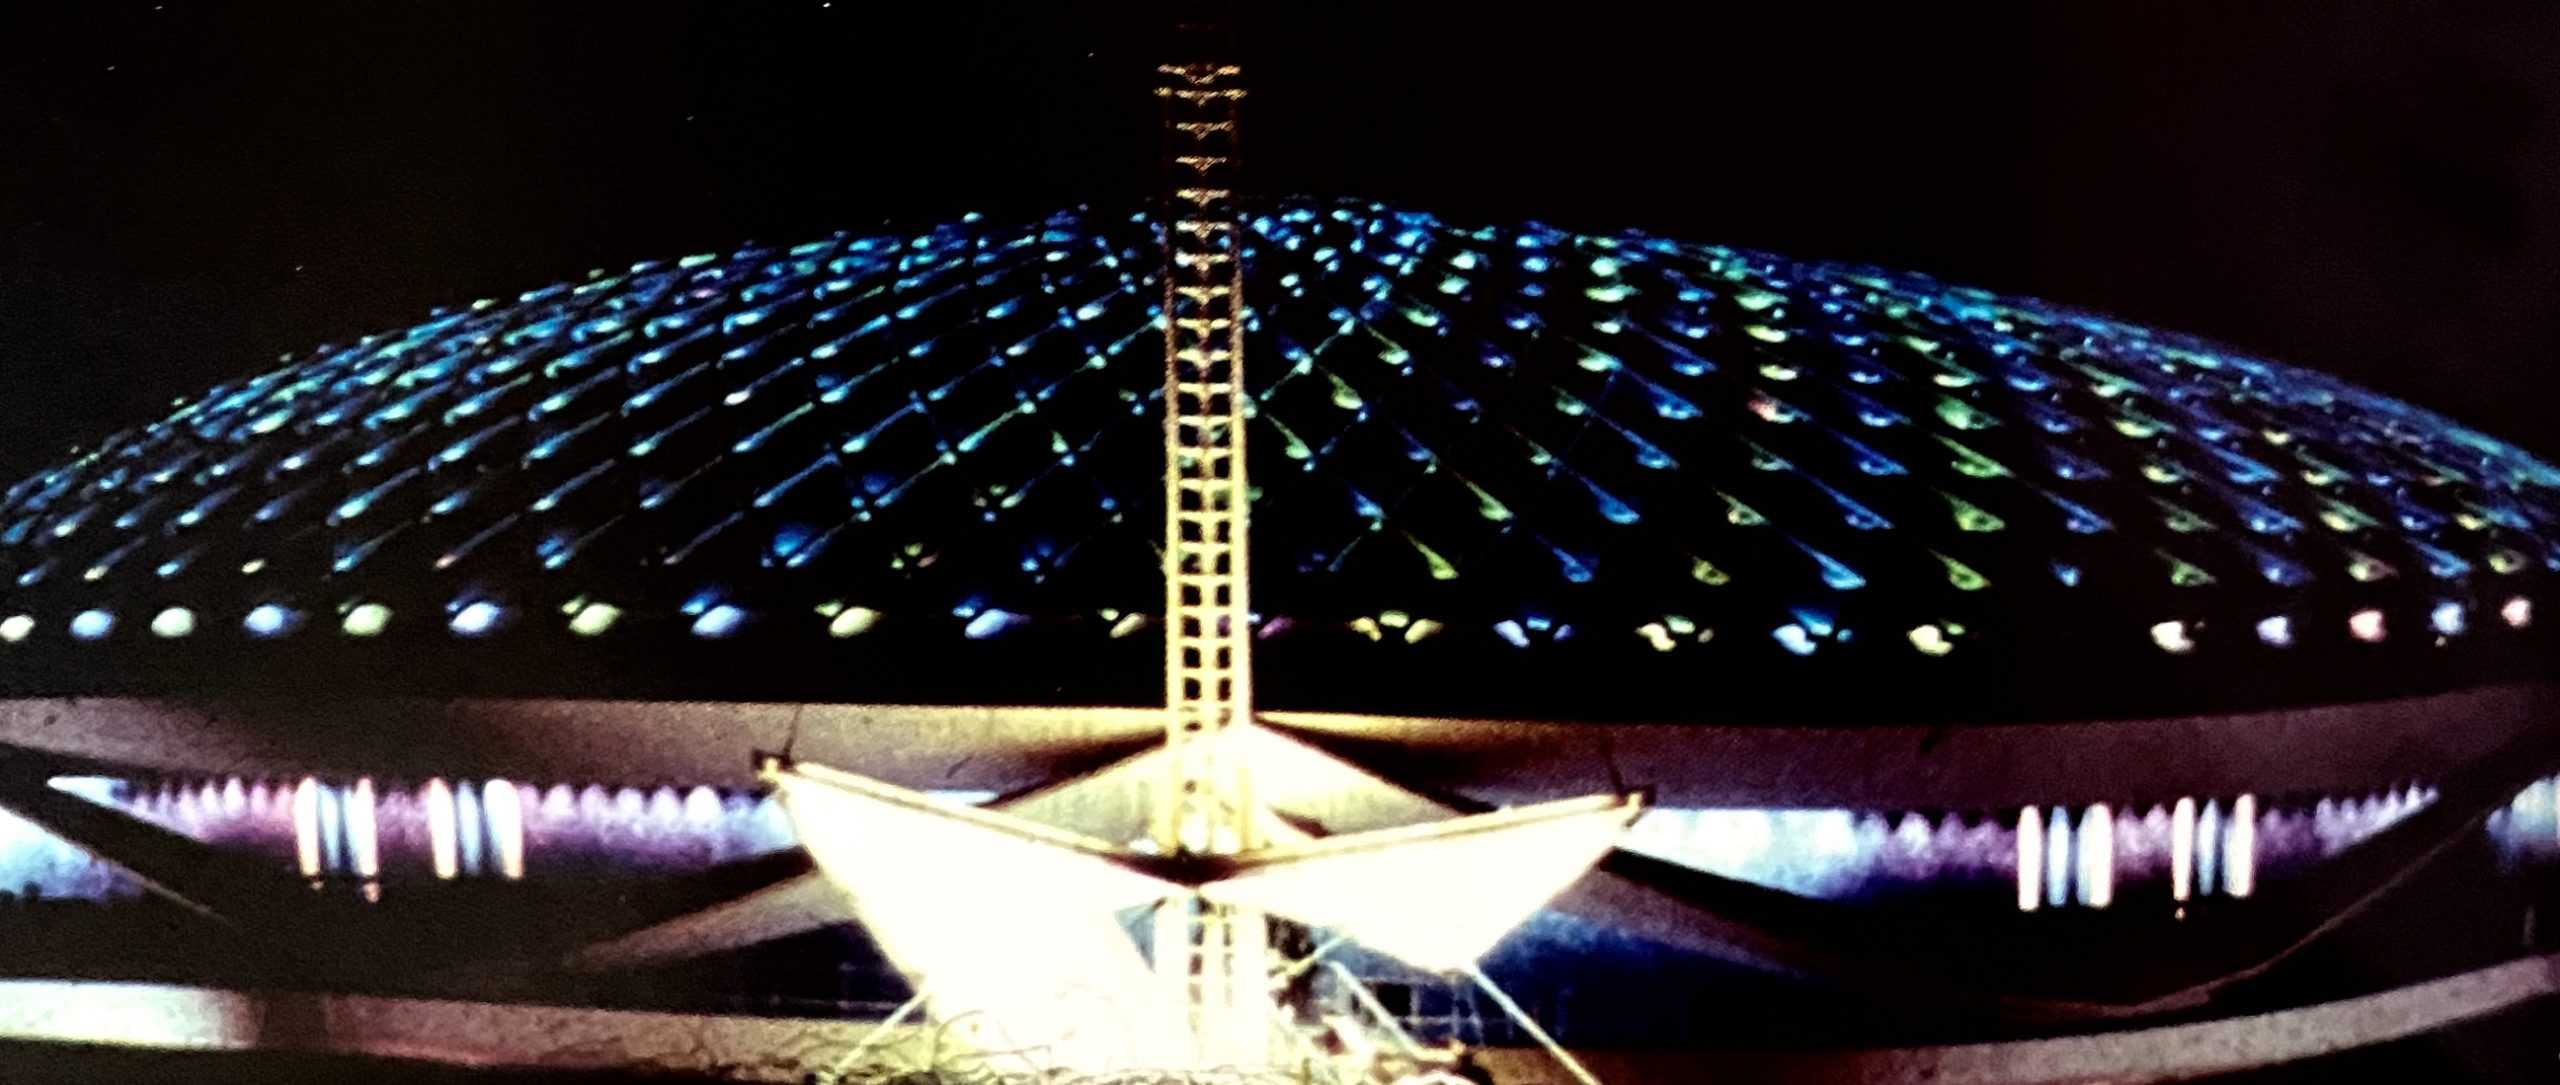 Progressland at night 1964 World's Fair